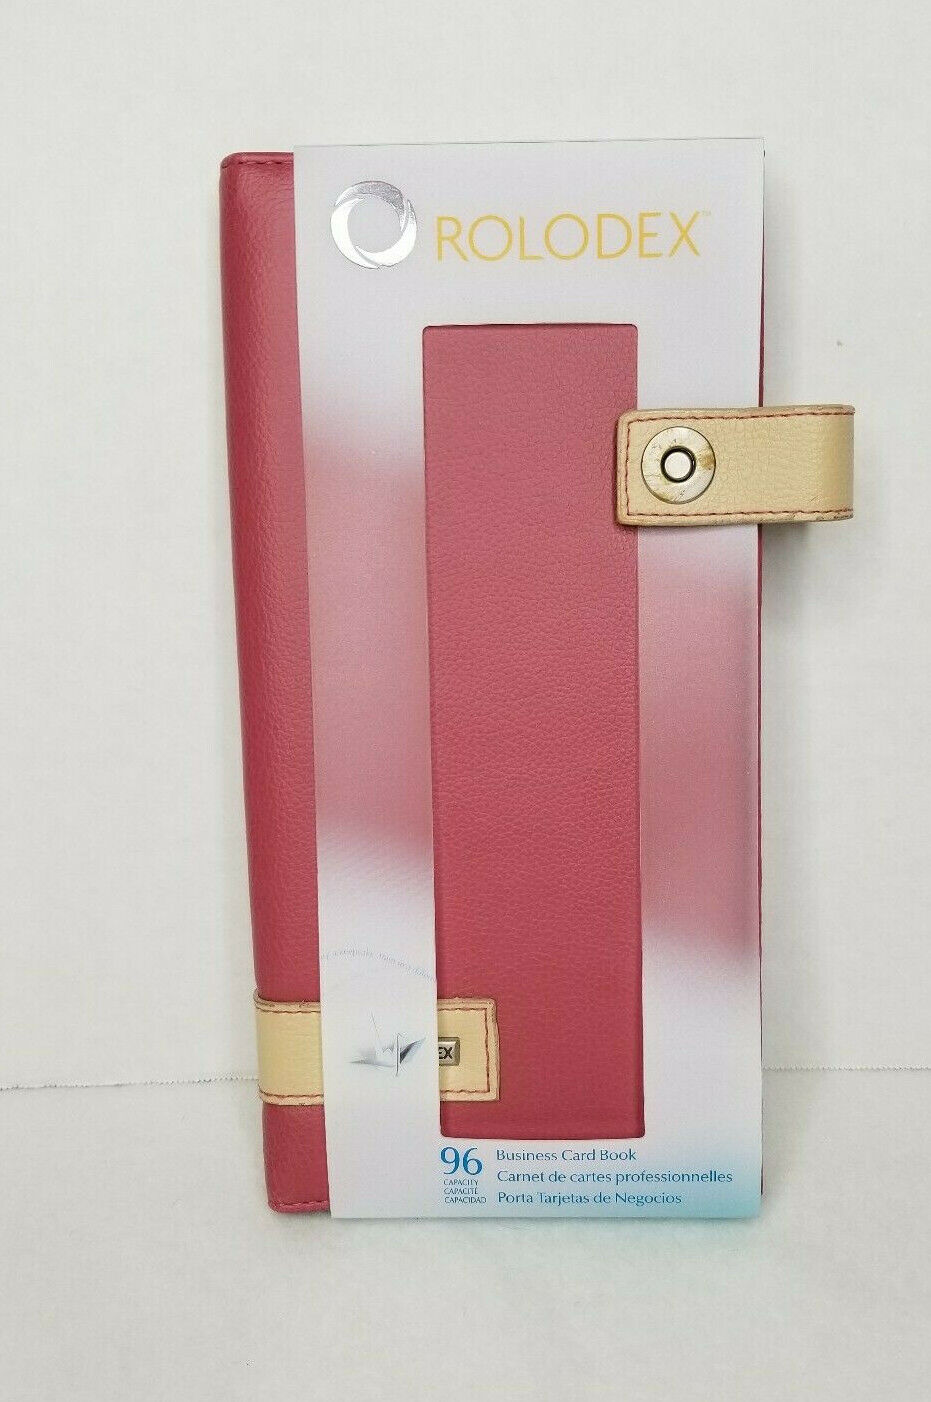 Rolodex Snap Buckle Pink & Tan 96 Count Business Card Holder